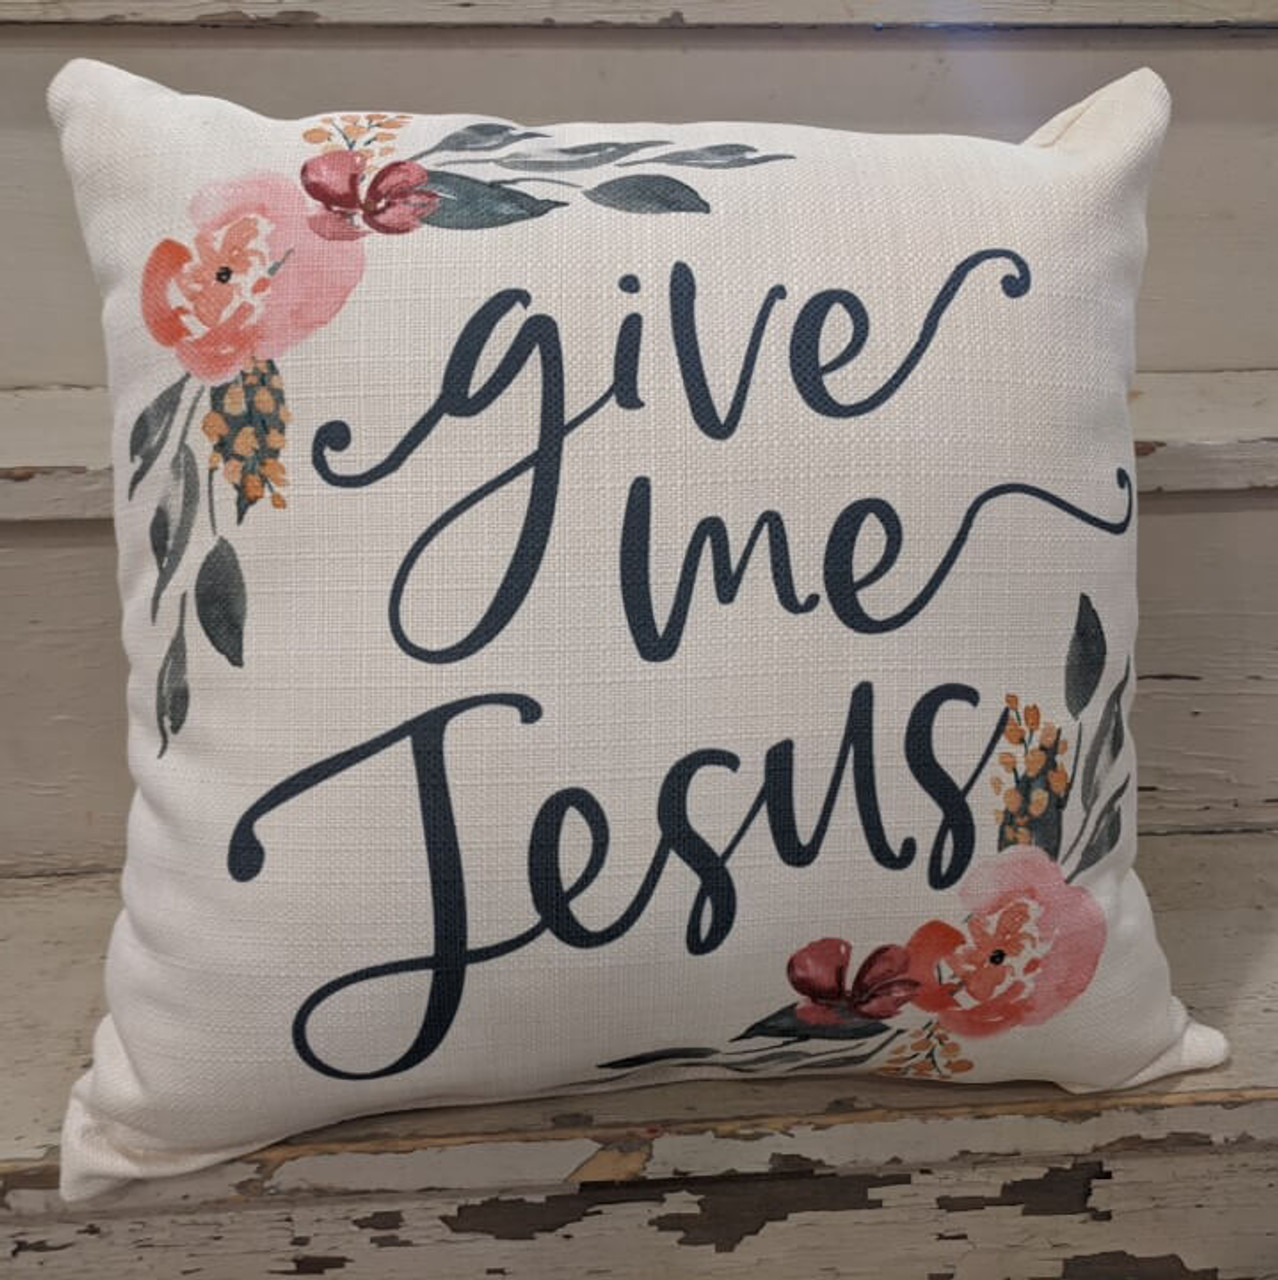 """The perfect way to cozy up any space! """"give me Jesus"""" sentiment and floral design are dyed directly into the fabric, so it won't peel or crack. Made from a soft yet durable polyester fabric, your pillow will arrive stuffed with poly-fill and sewn shut. Approx. 17"""" square; machine washable in cold water, delicate cycle- fluff, air dry flat."""